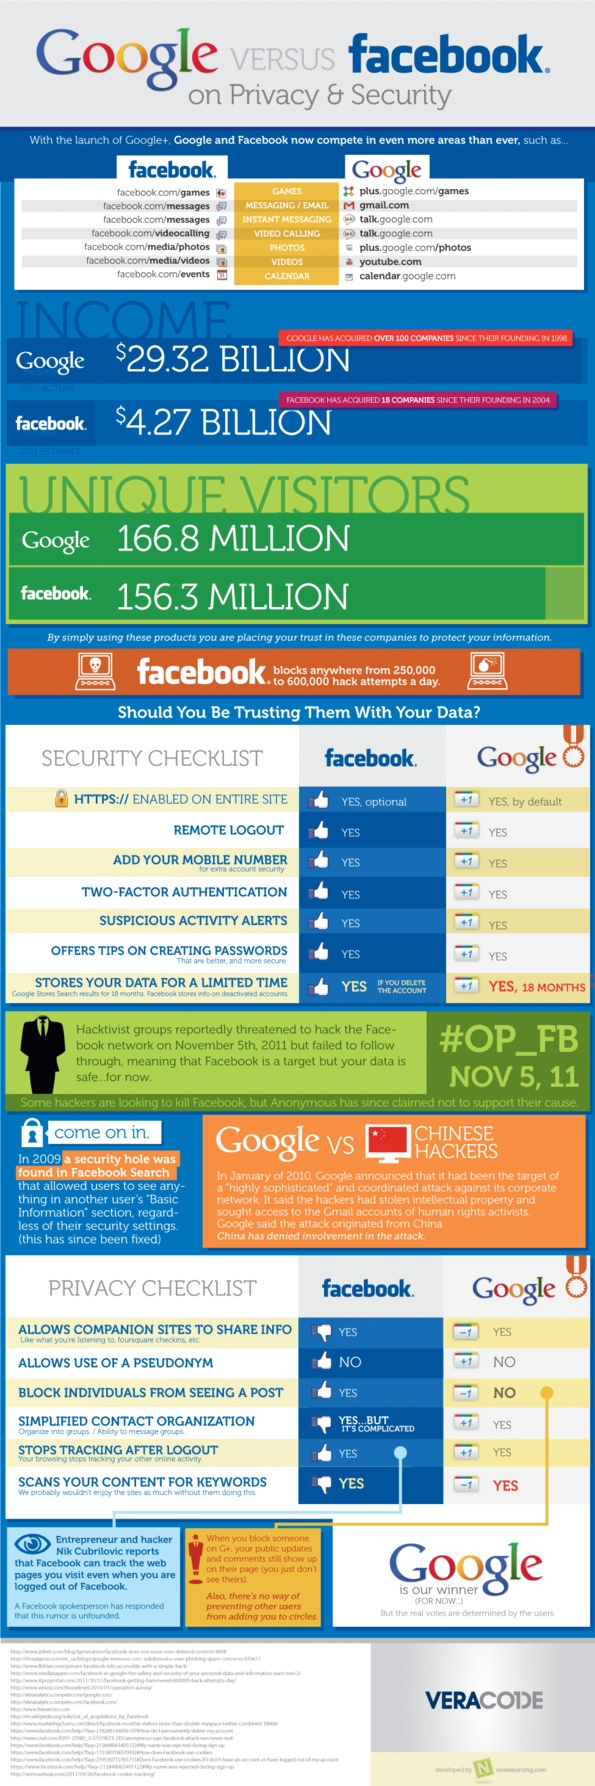 Google versus facebook on privacy security infographic social networkssocial